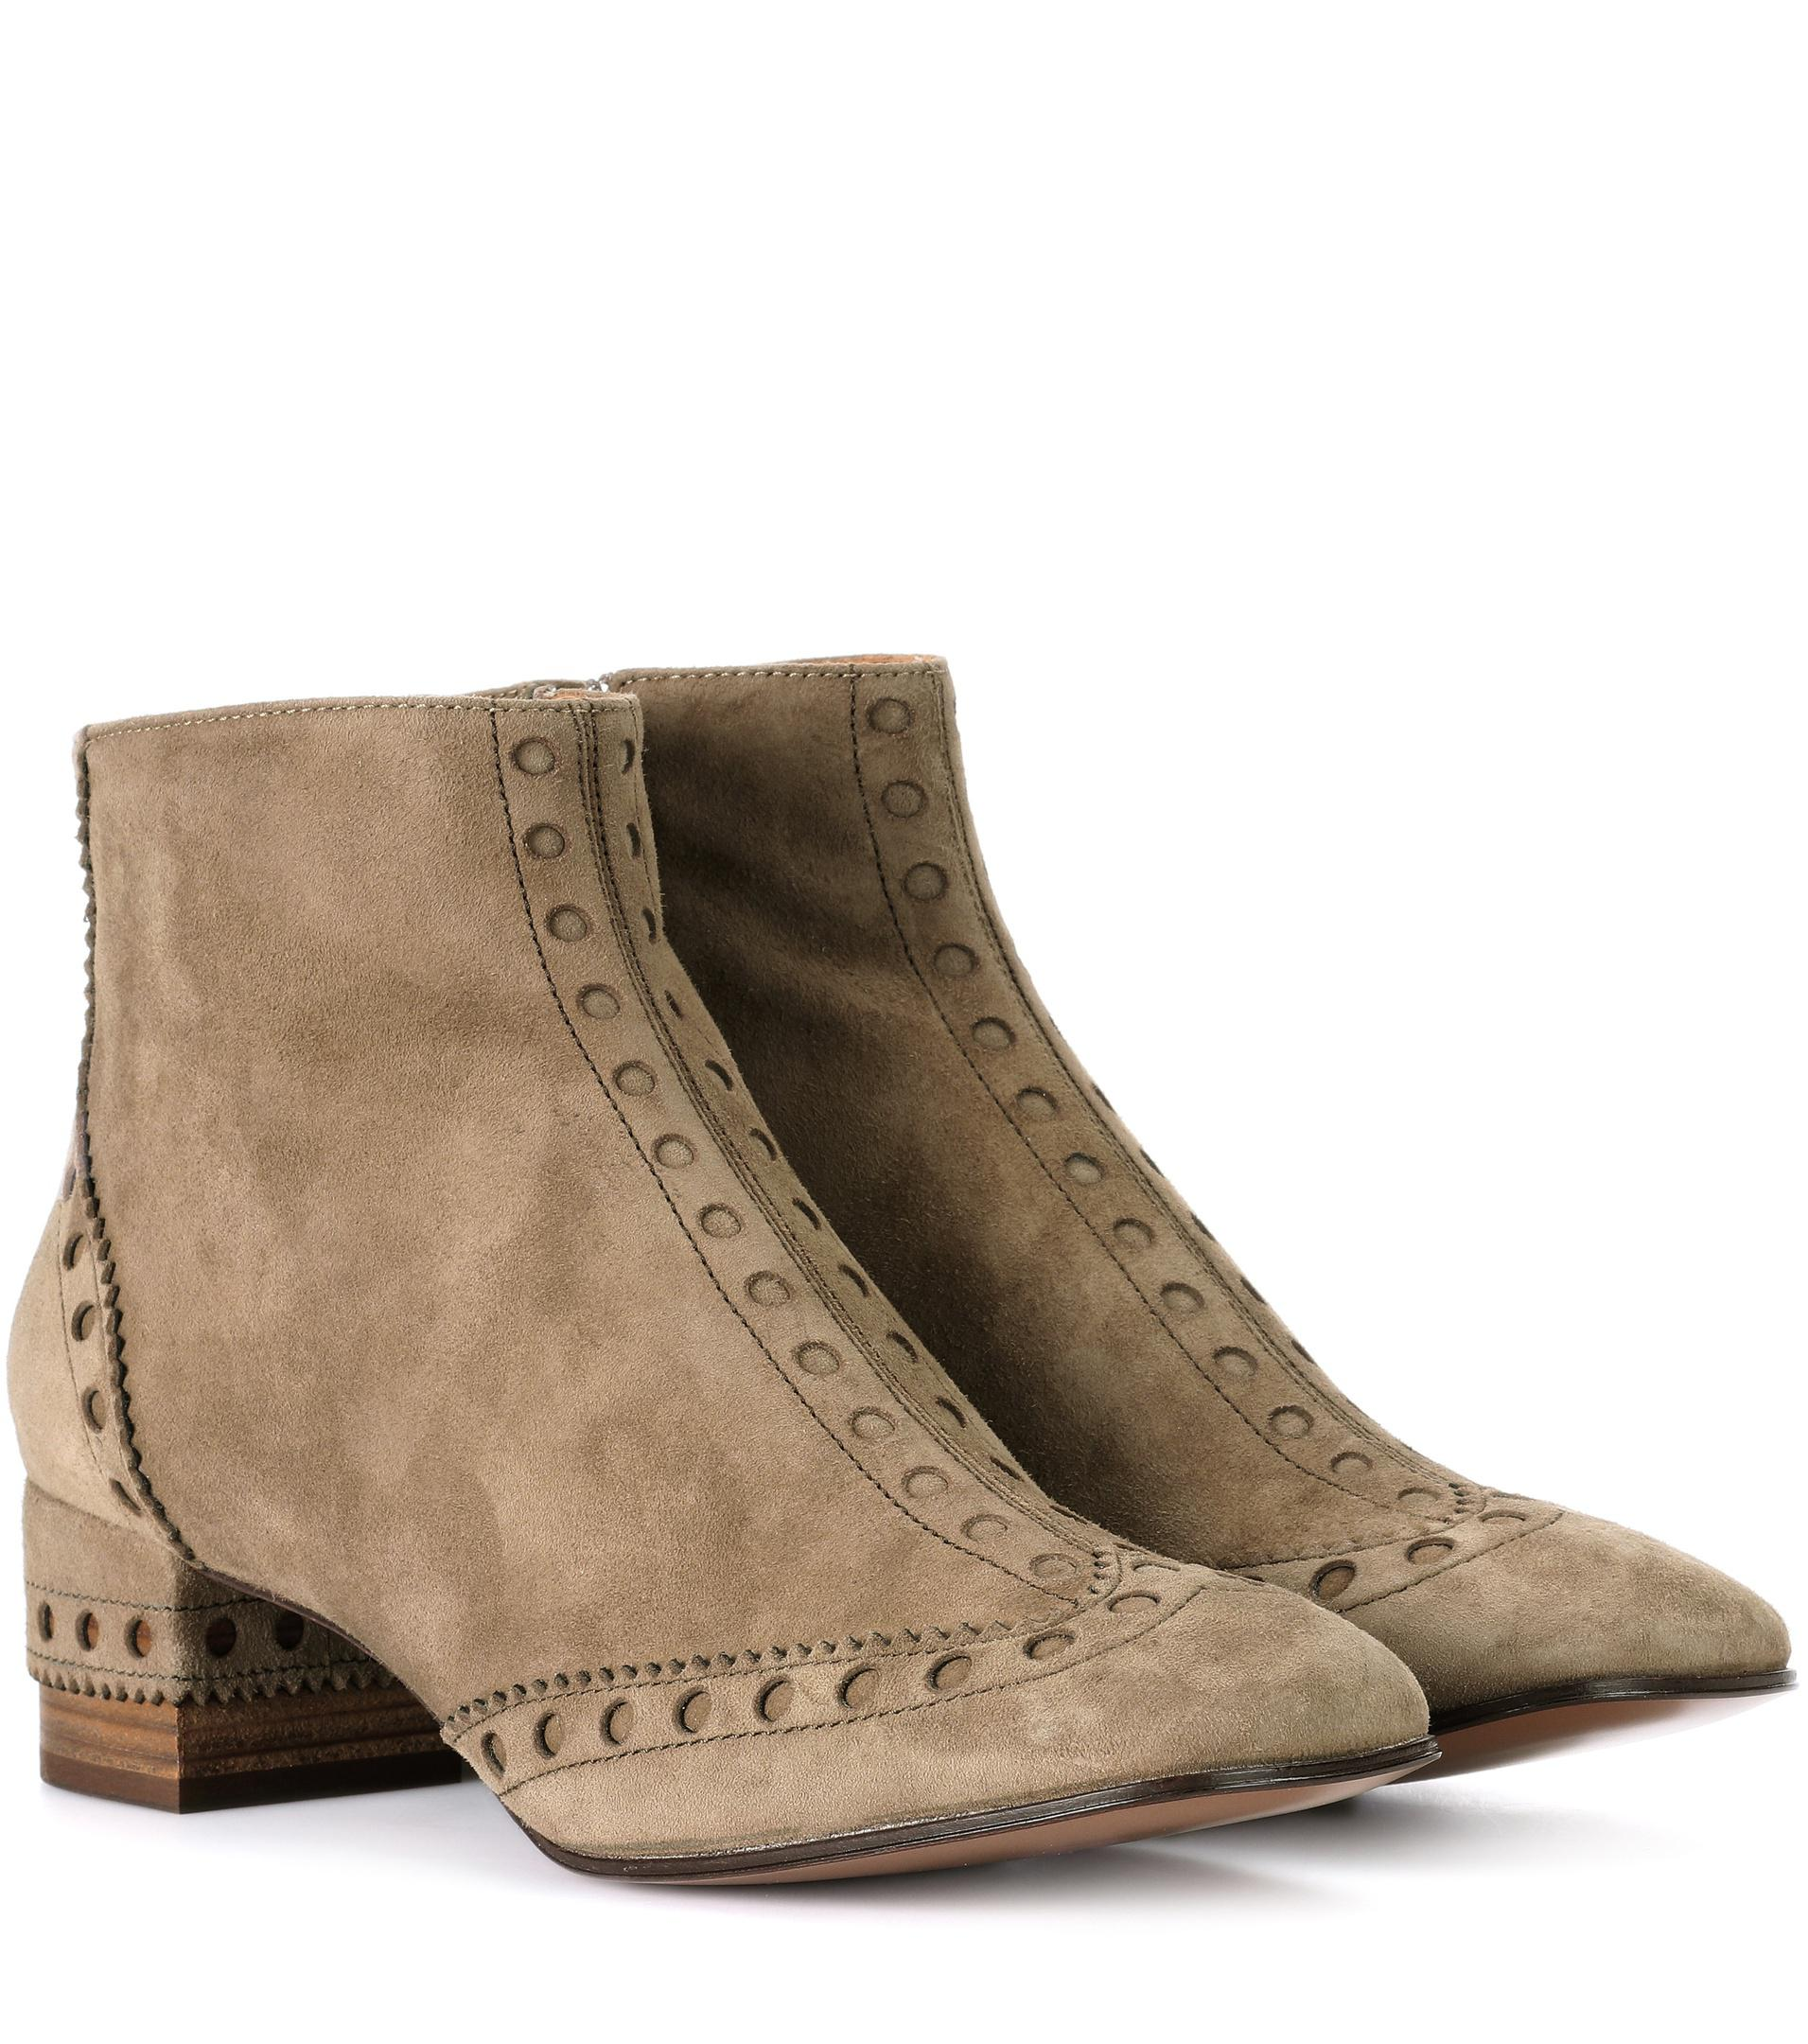 sale for nice Chloé Perry ankle boots outlet enjoy buy cheap amazing price G0pG3ujj